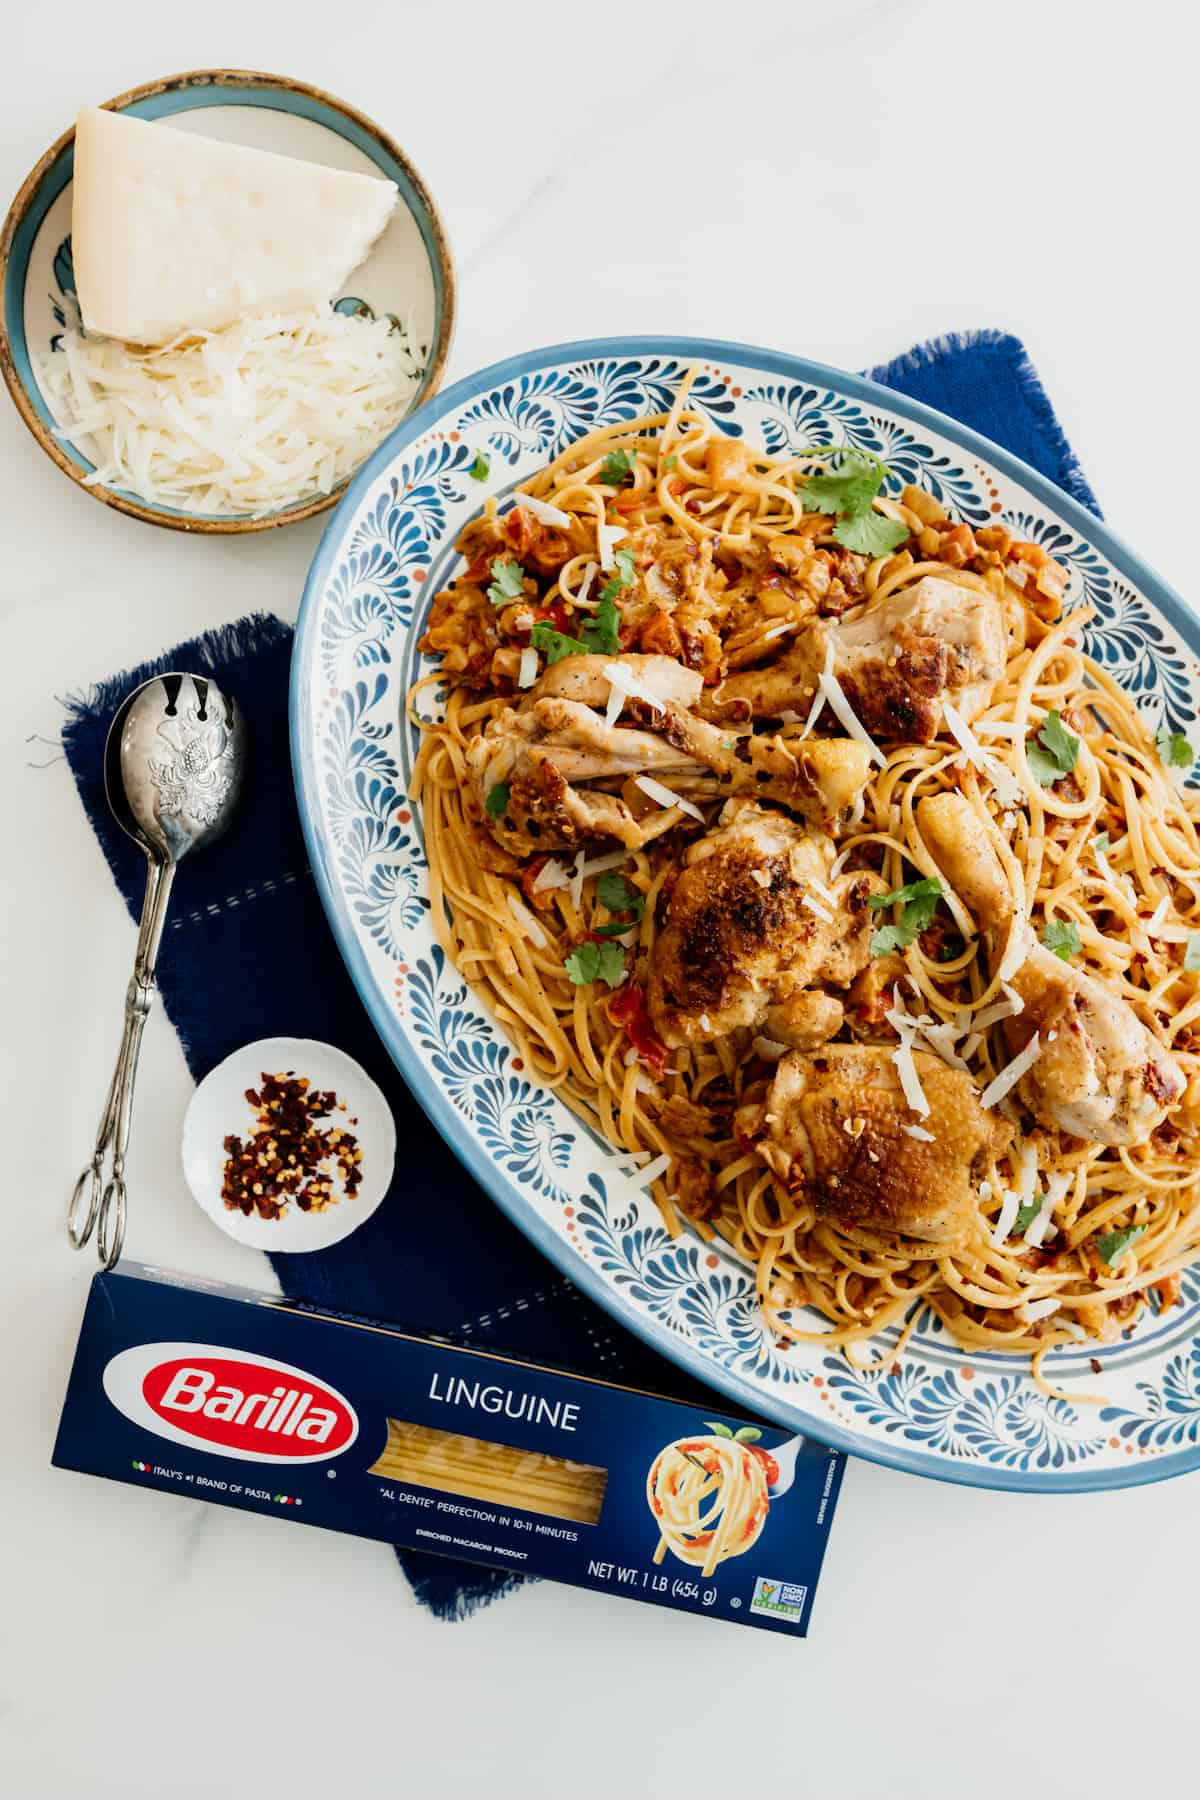 barilla linguine box on the side of a platter if chicken pasta